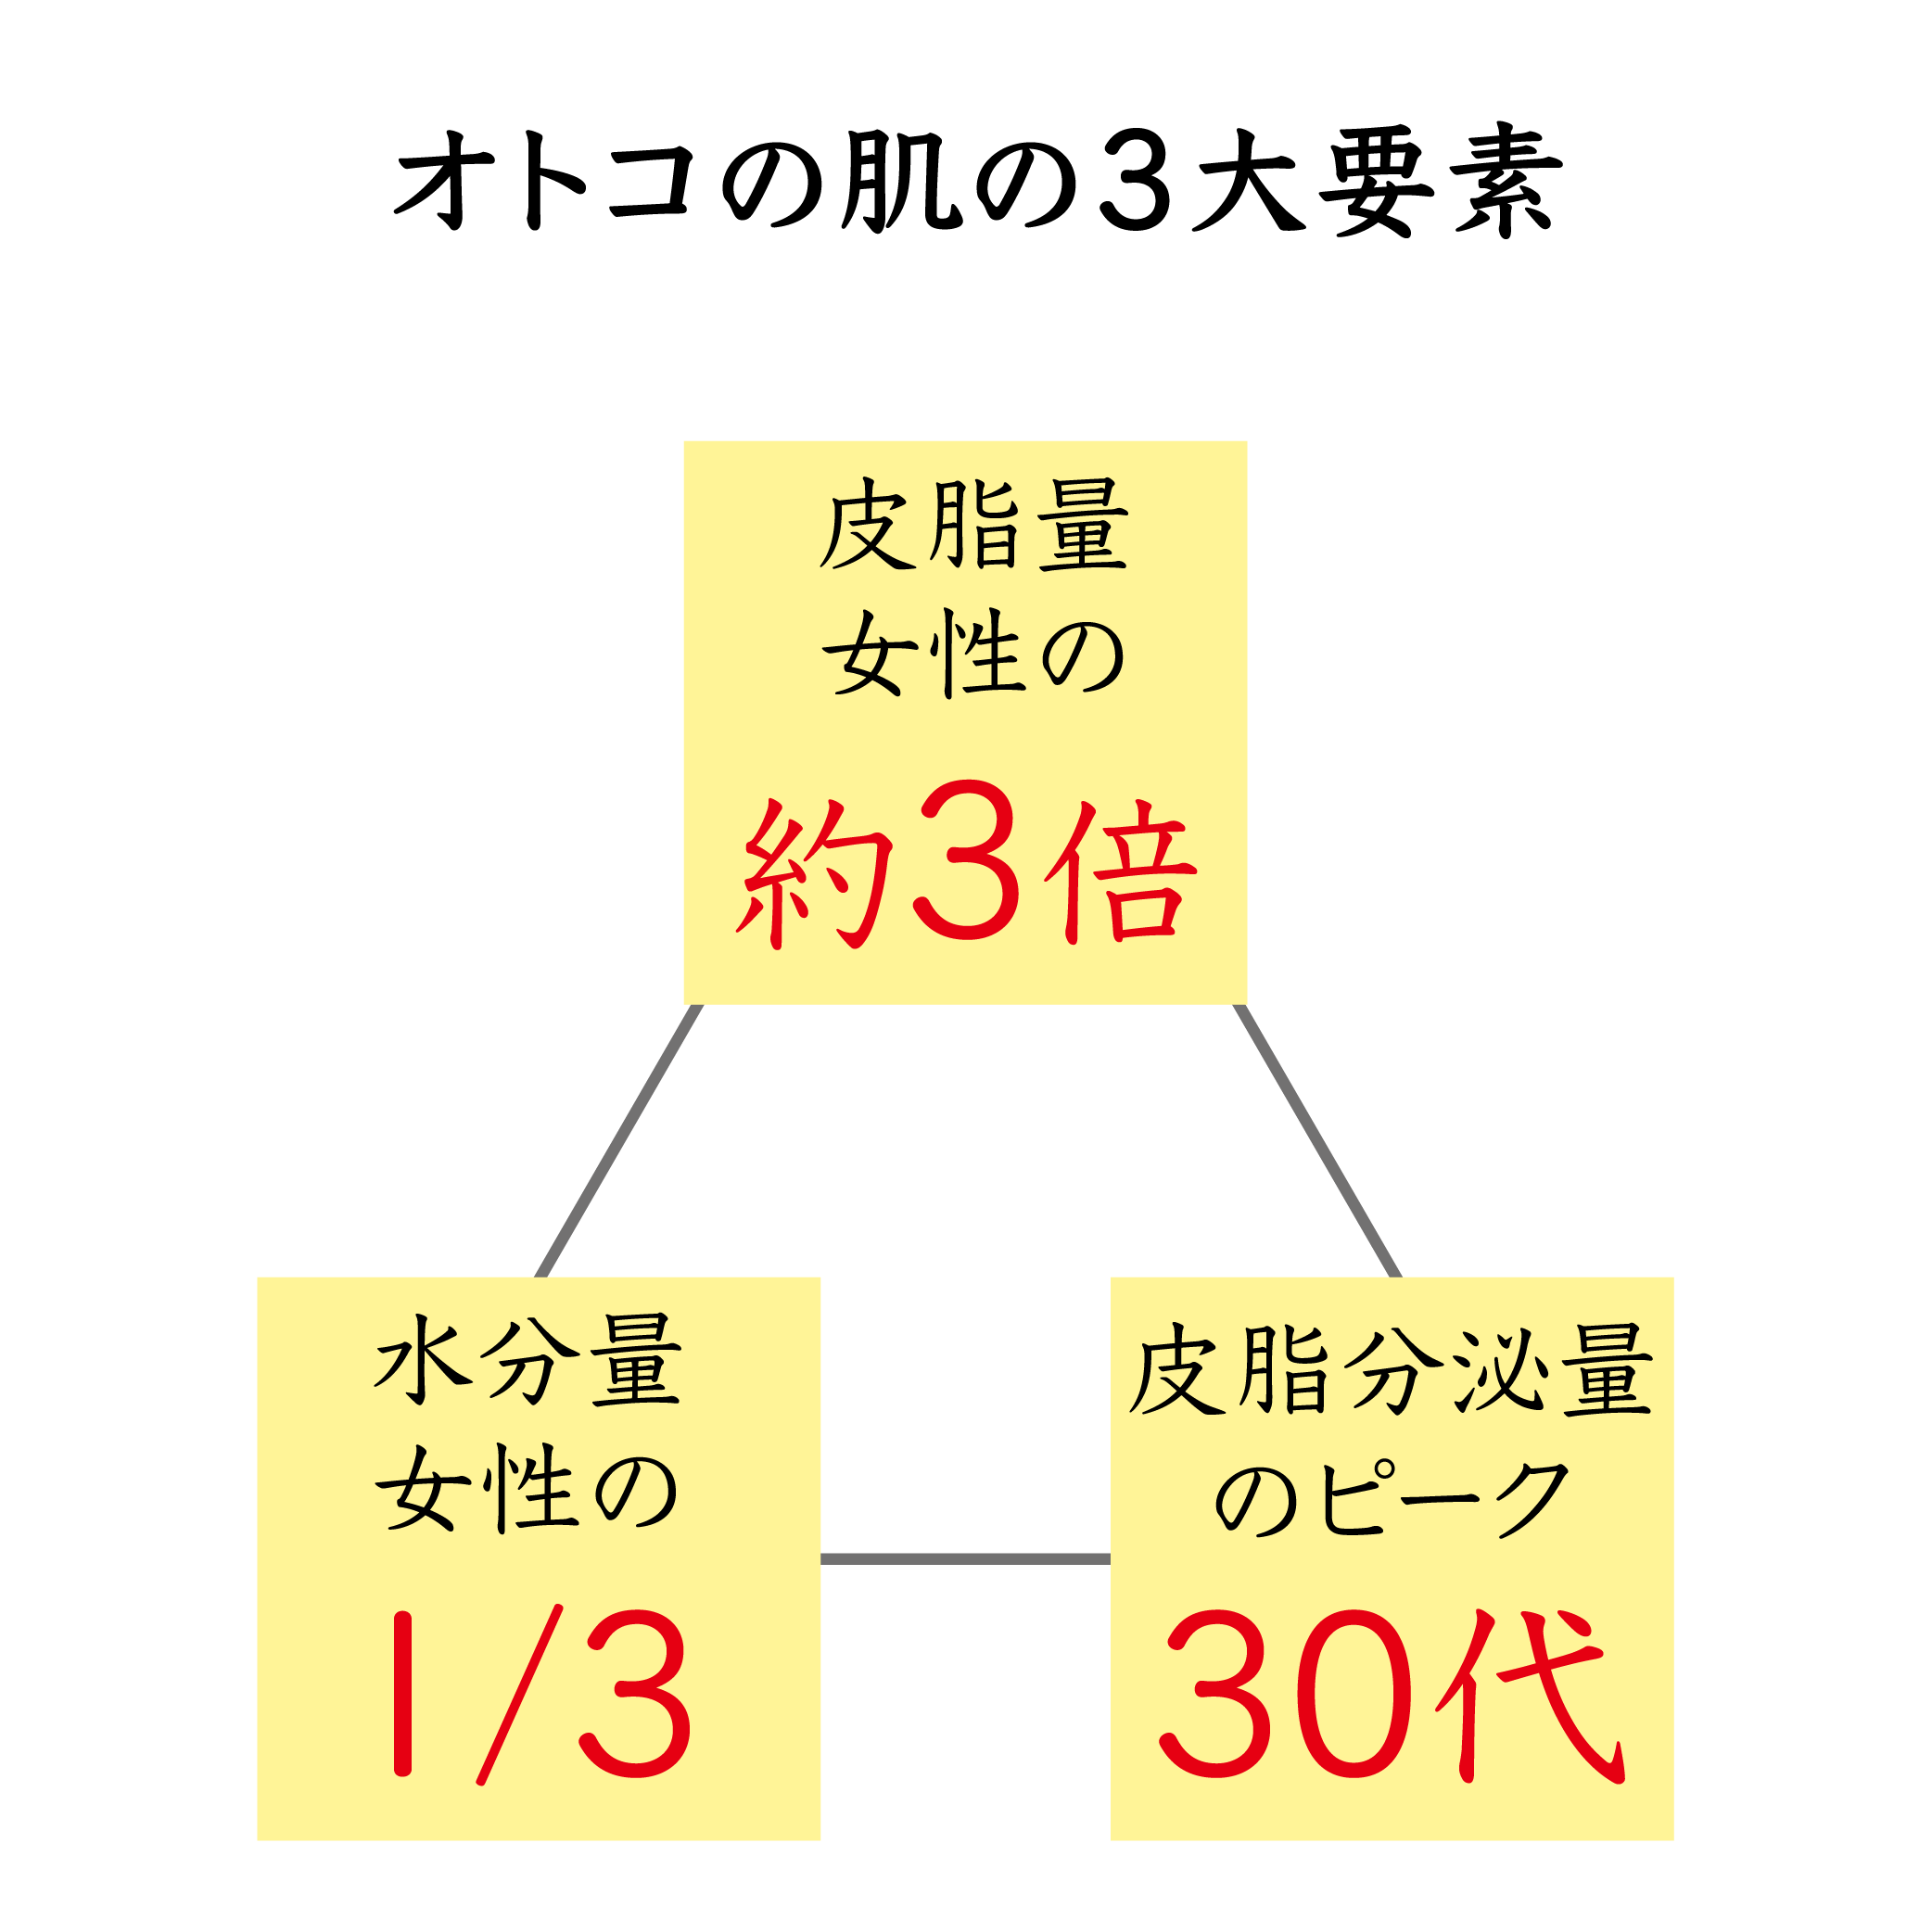 theo1-2_アートボード 1.png